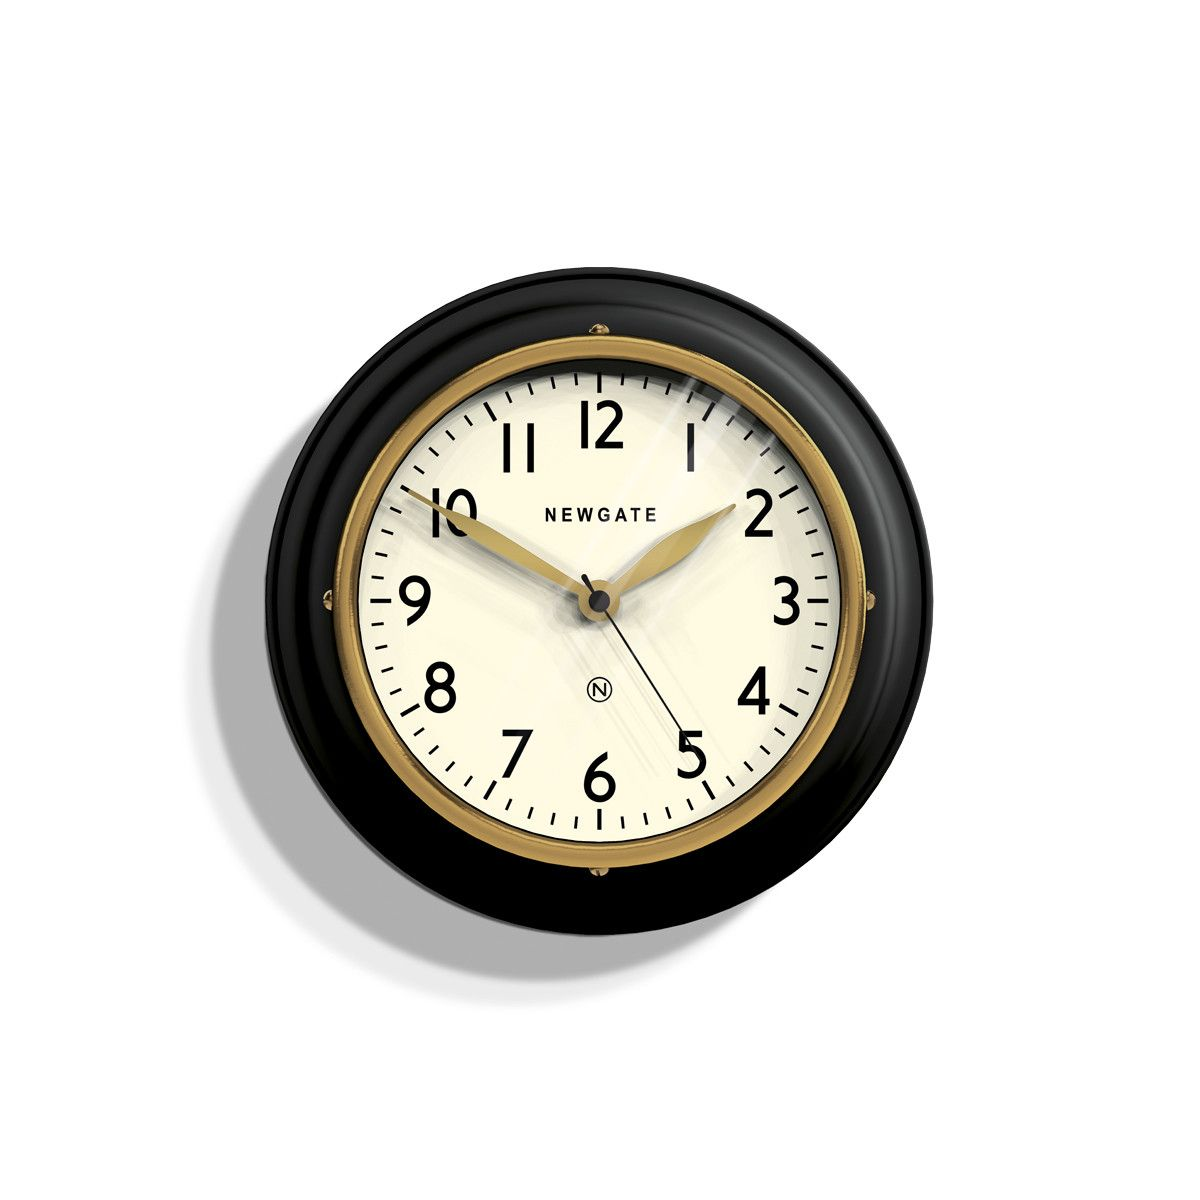 9 Inches Mini Cookhouse Ii Small Kitchen Wall Clock Classic Black